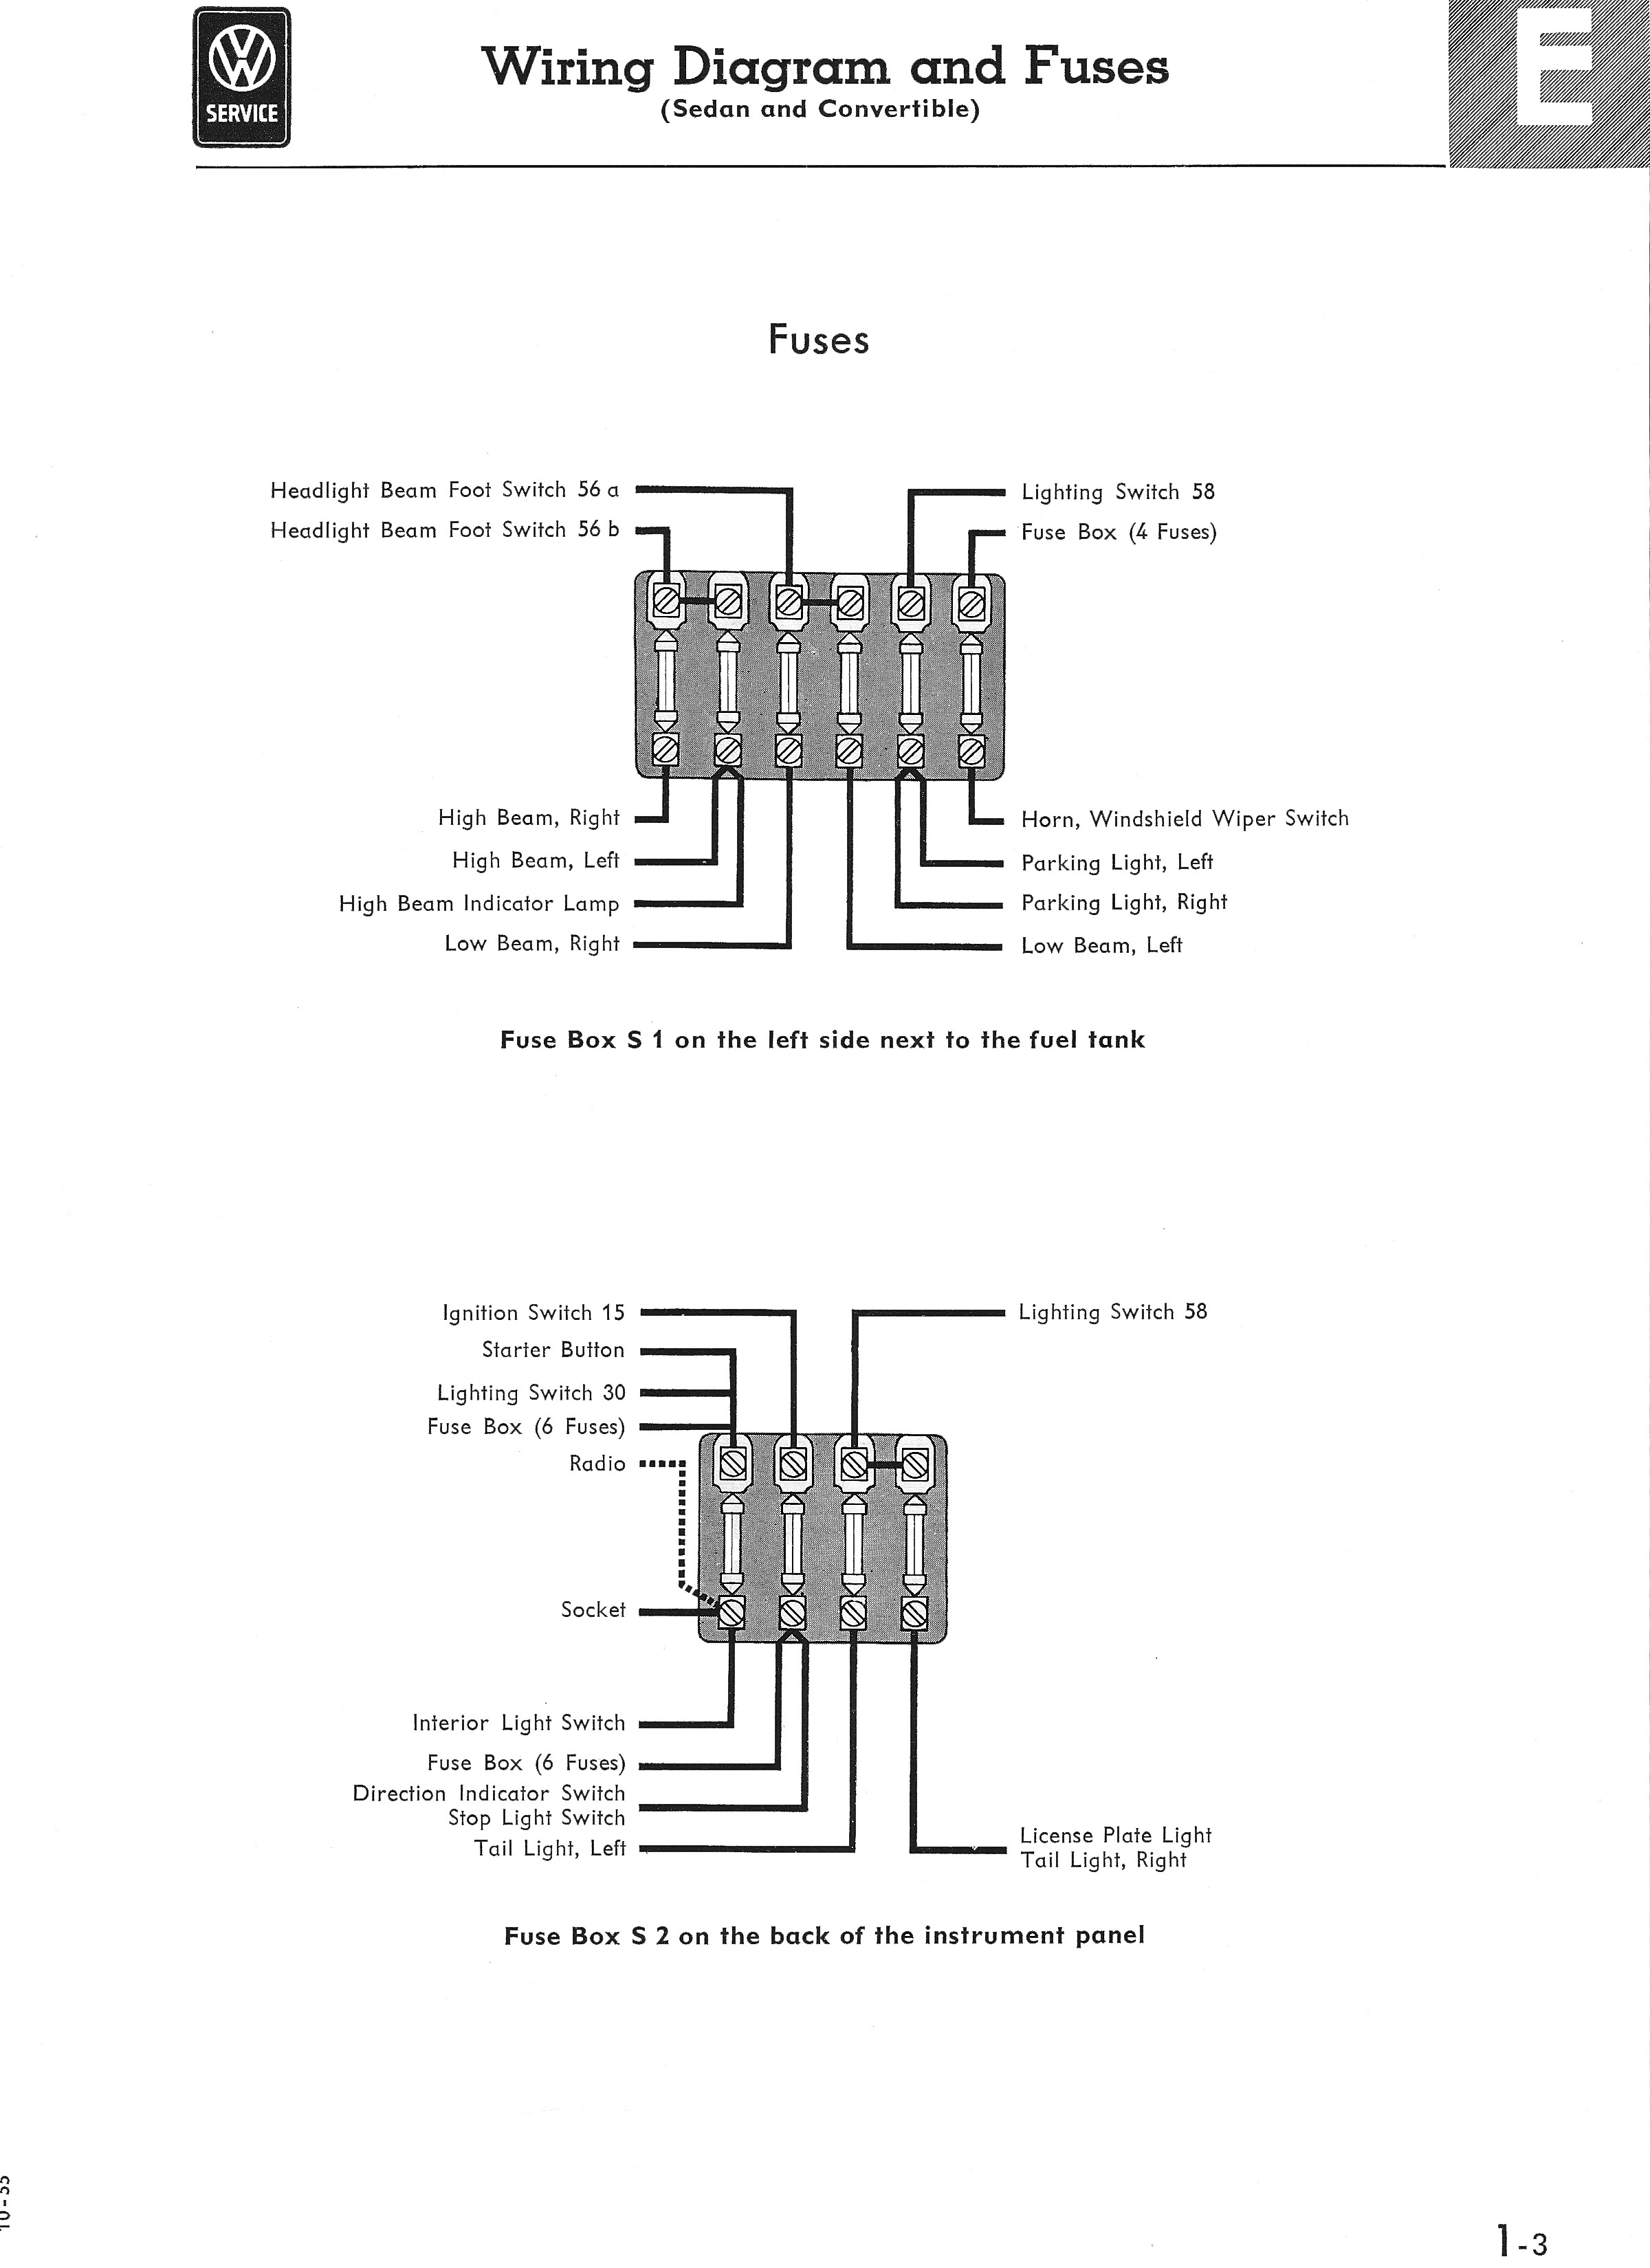 bug_5253_fuses_300dpi thesamba com type 1 wiring diagrams 2000 impala headlight plug wiring diagram at mifinder.co